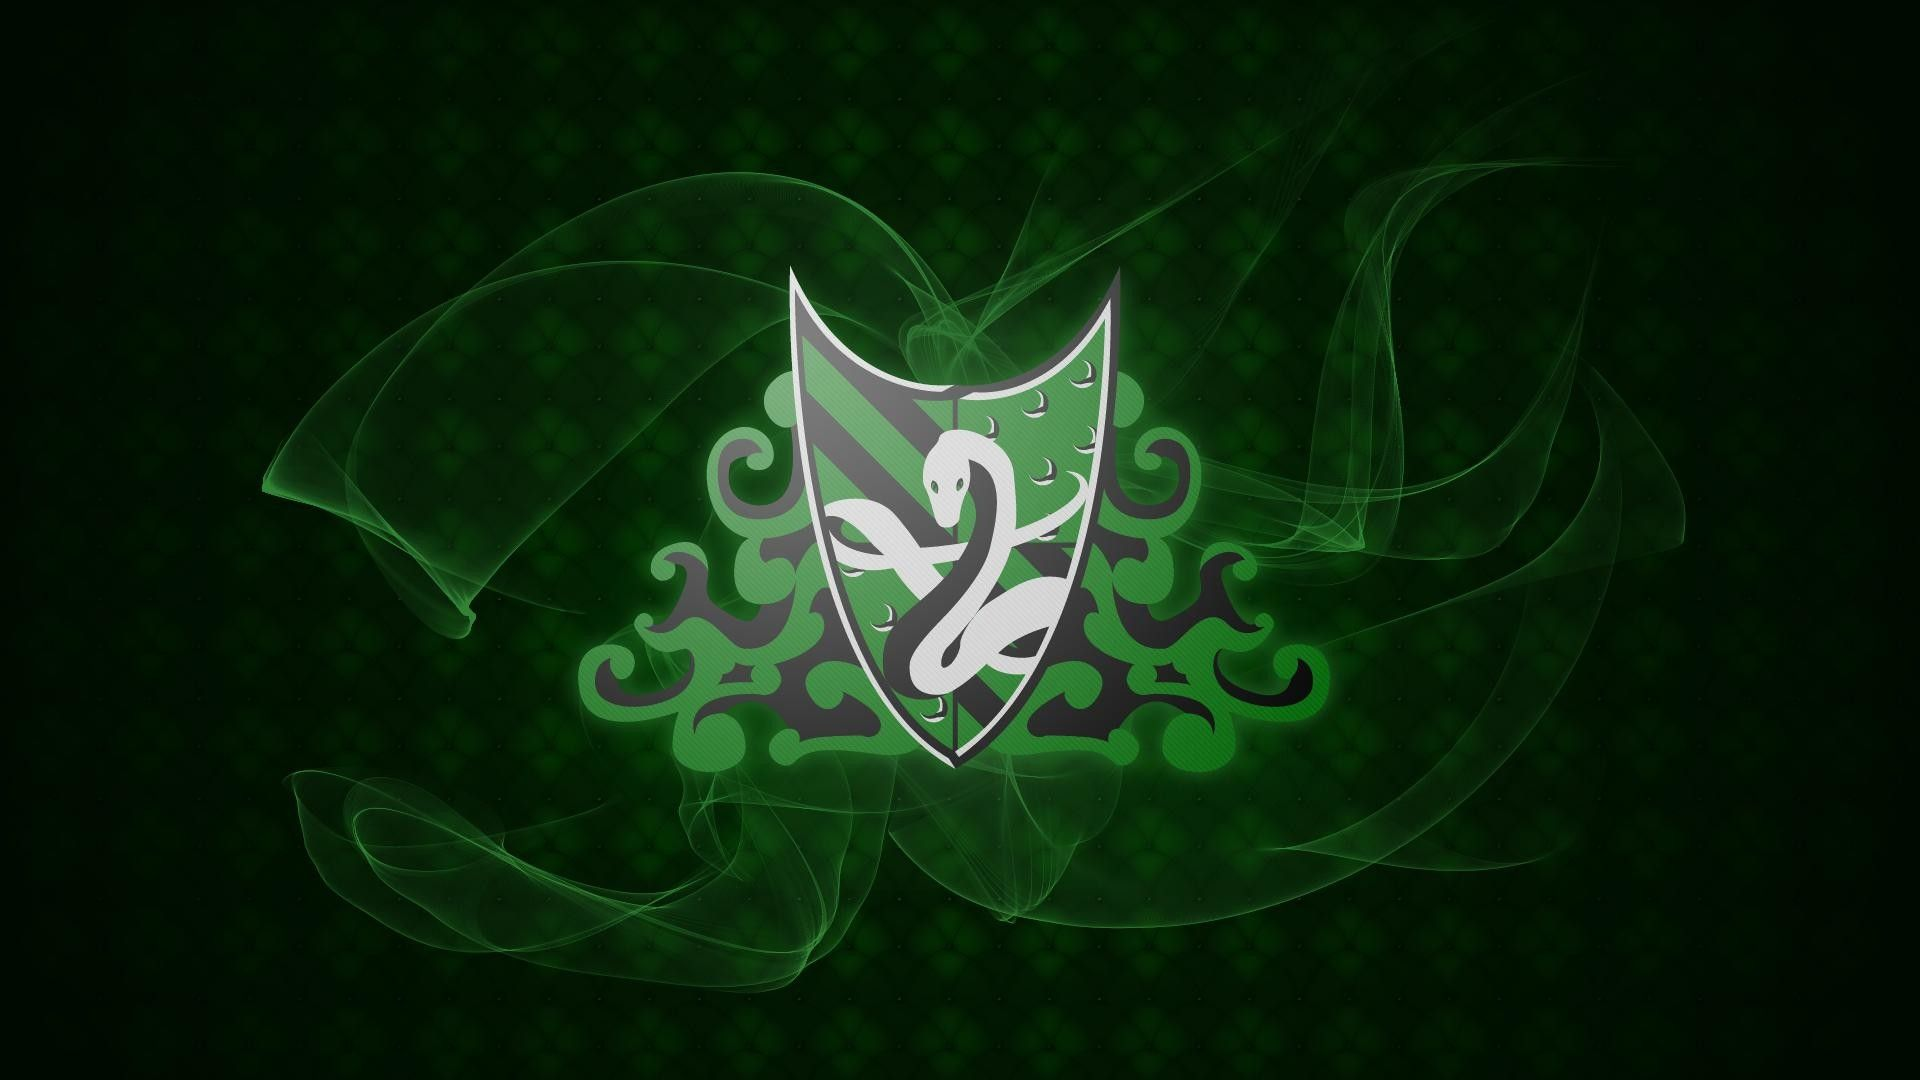 Slytherin Iphone Wallpapers Top Free Slytherin Iphone Backgrounds Wallpaperaccess